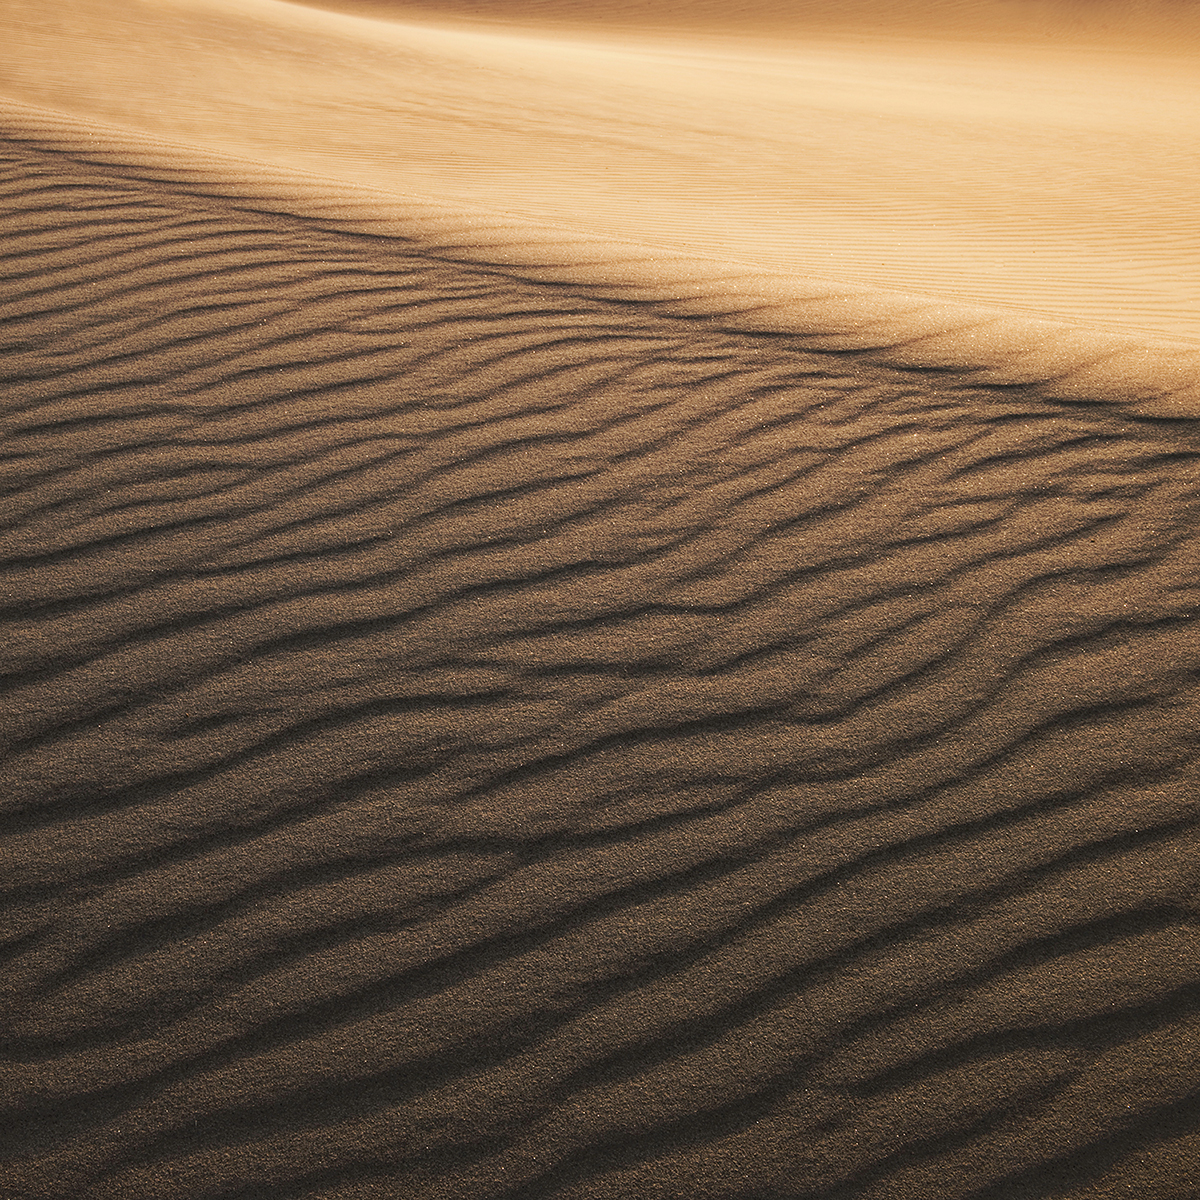 Dune wave pattern, Death Valley, 2009